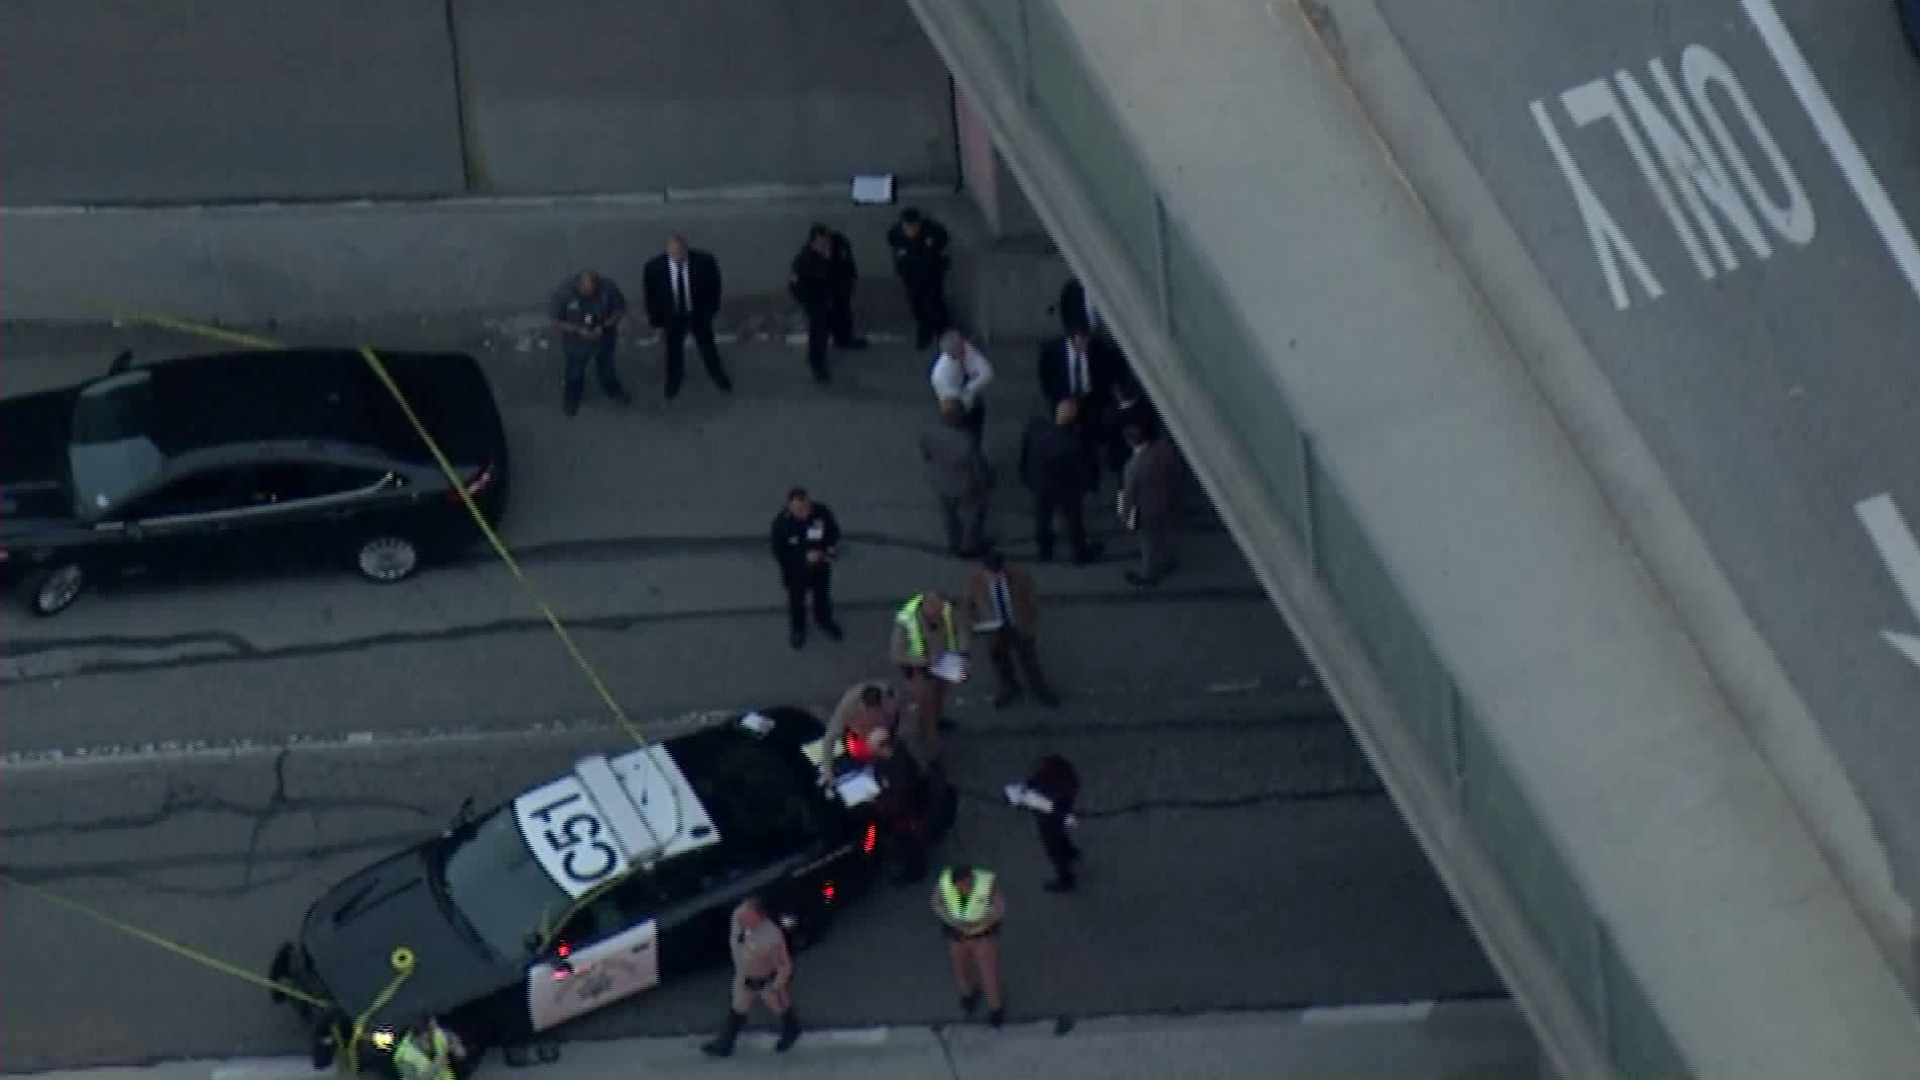 Authorities were investigating after a pedestrian died along the 101 Freeway in downtown Los Angeles on Feb. 12, 2019. (Credit: KTLA)